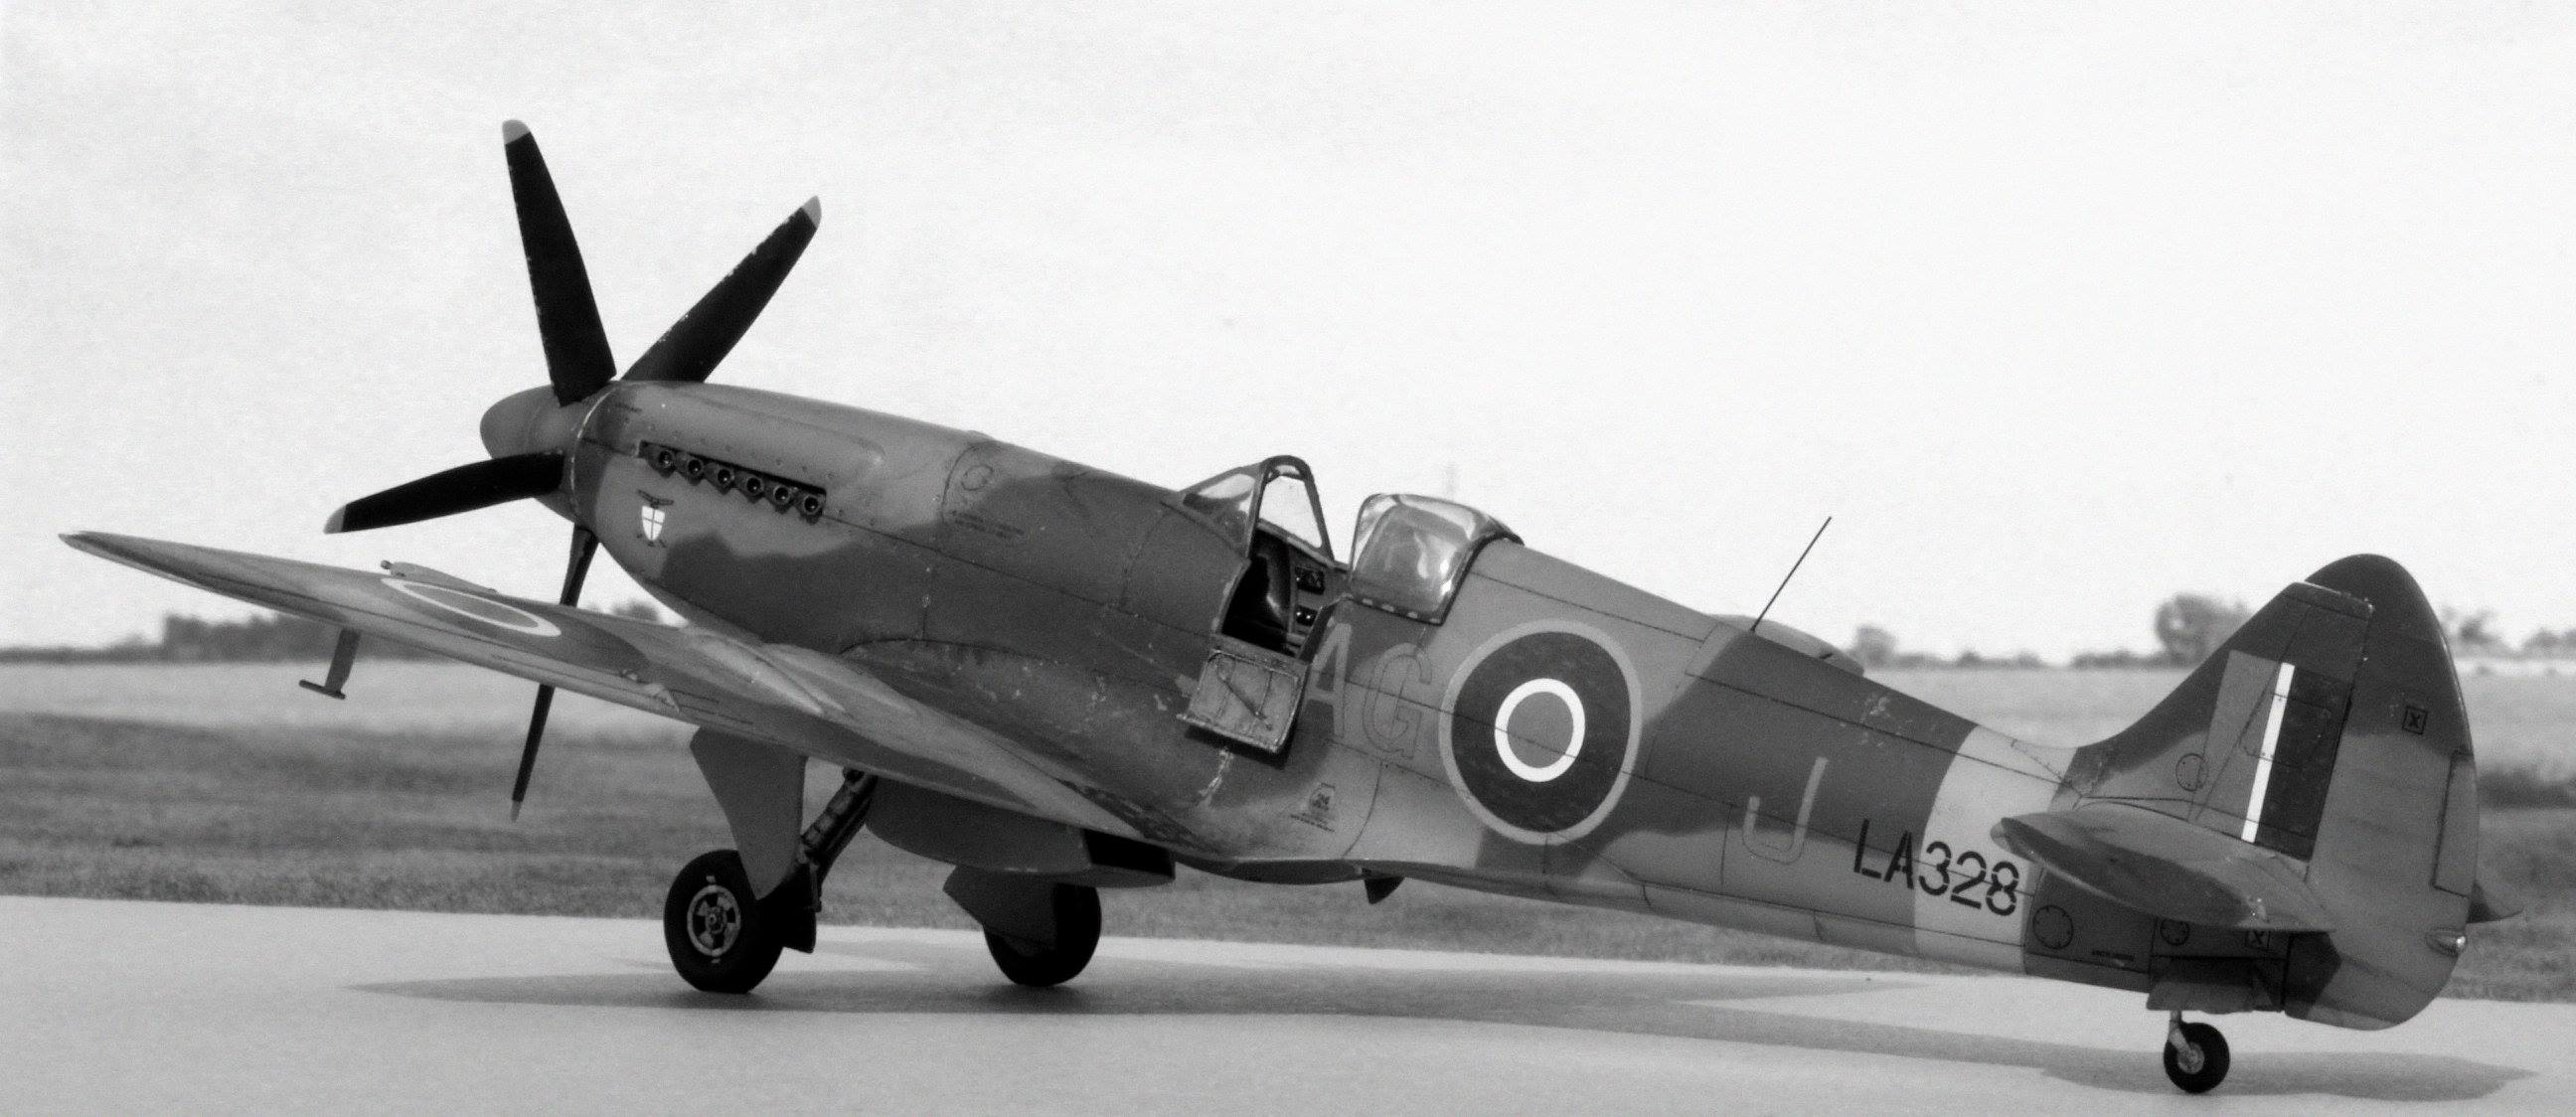 Spitfire F Mk 21 of 600 Squadron (County of London) RAuxAF, Biggin Hill, 1947. Airfix kit-bash in 1/48th scale.